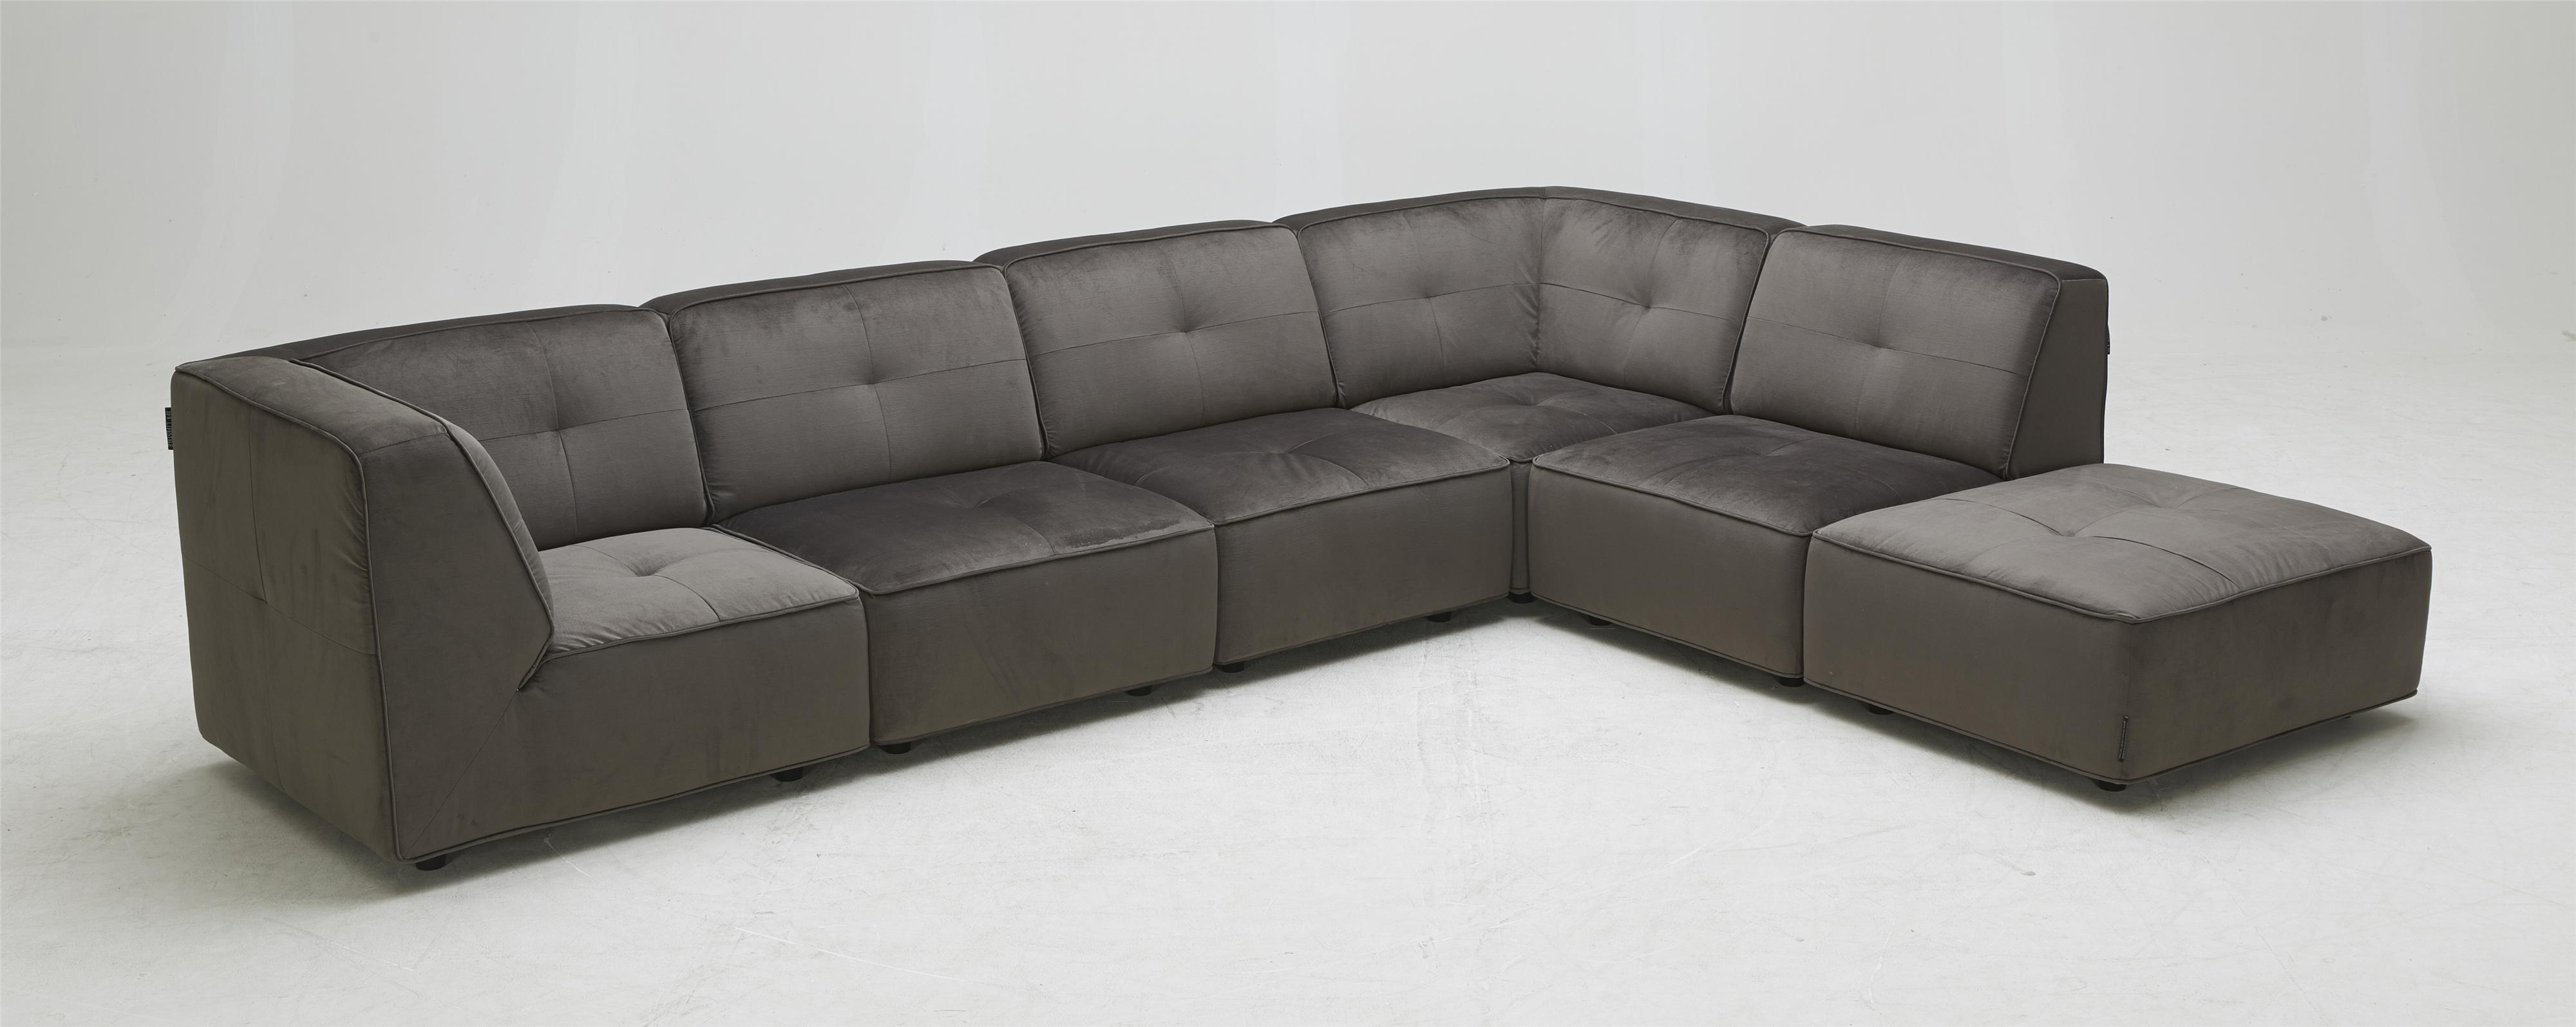 3179 Contemporary Sectional Sofa at Becker Furniture